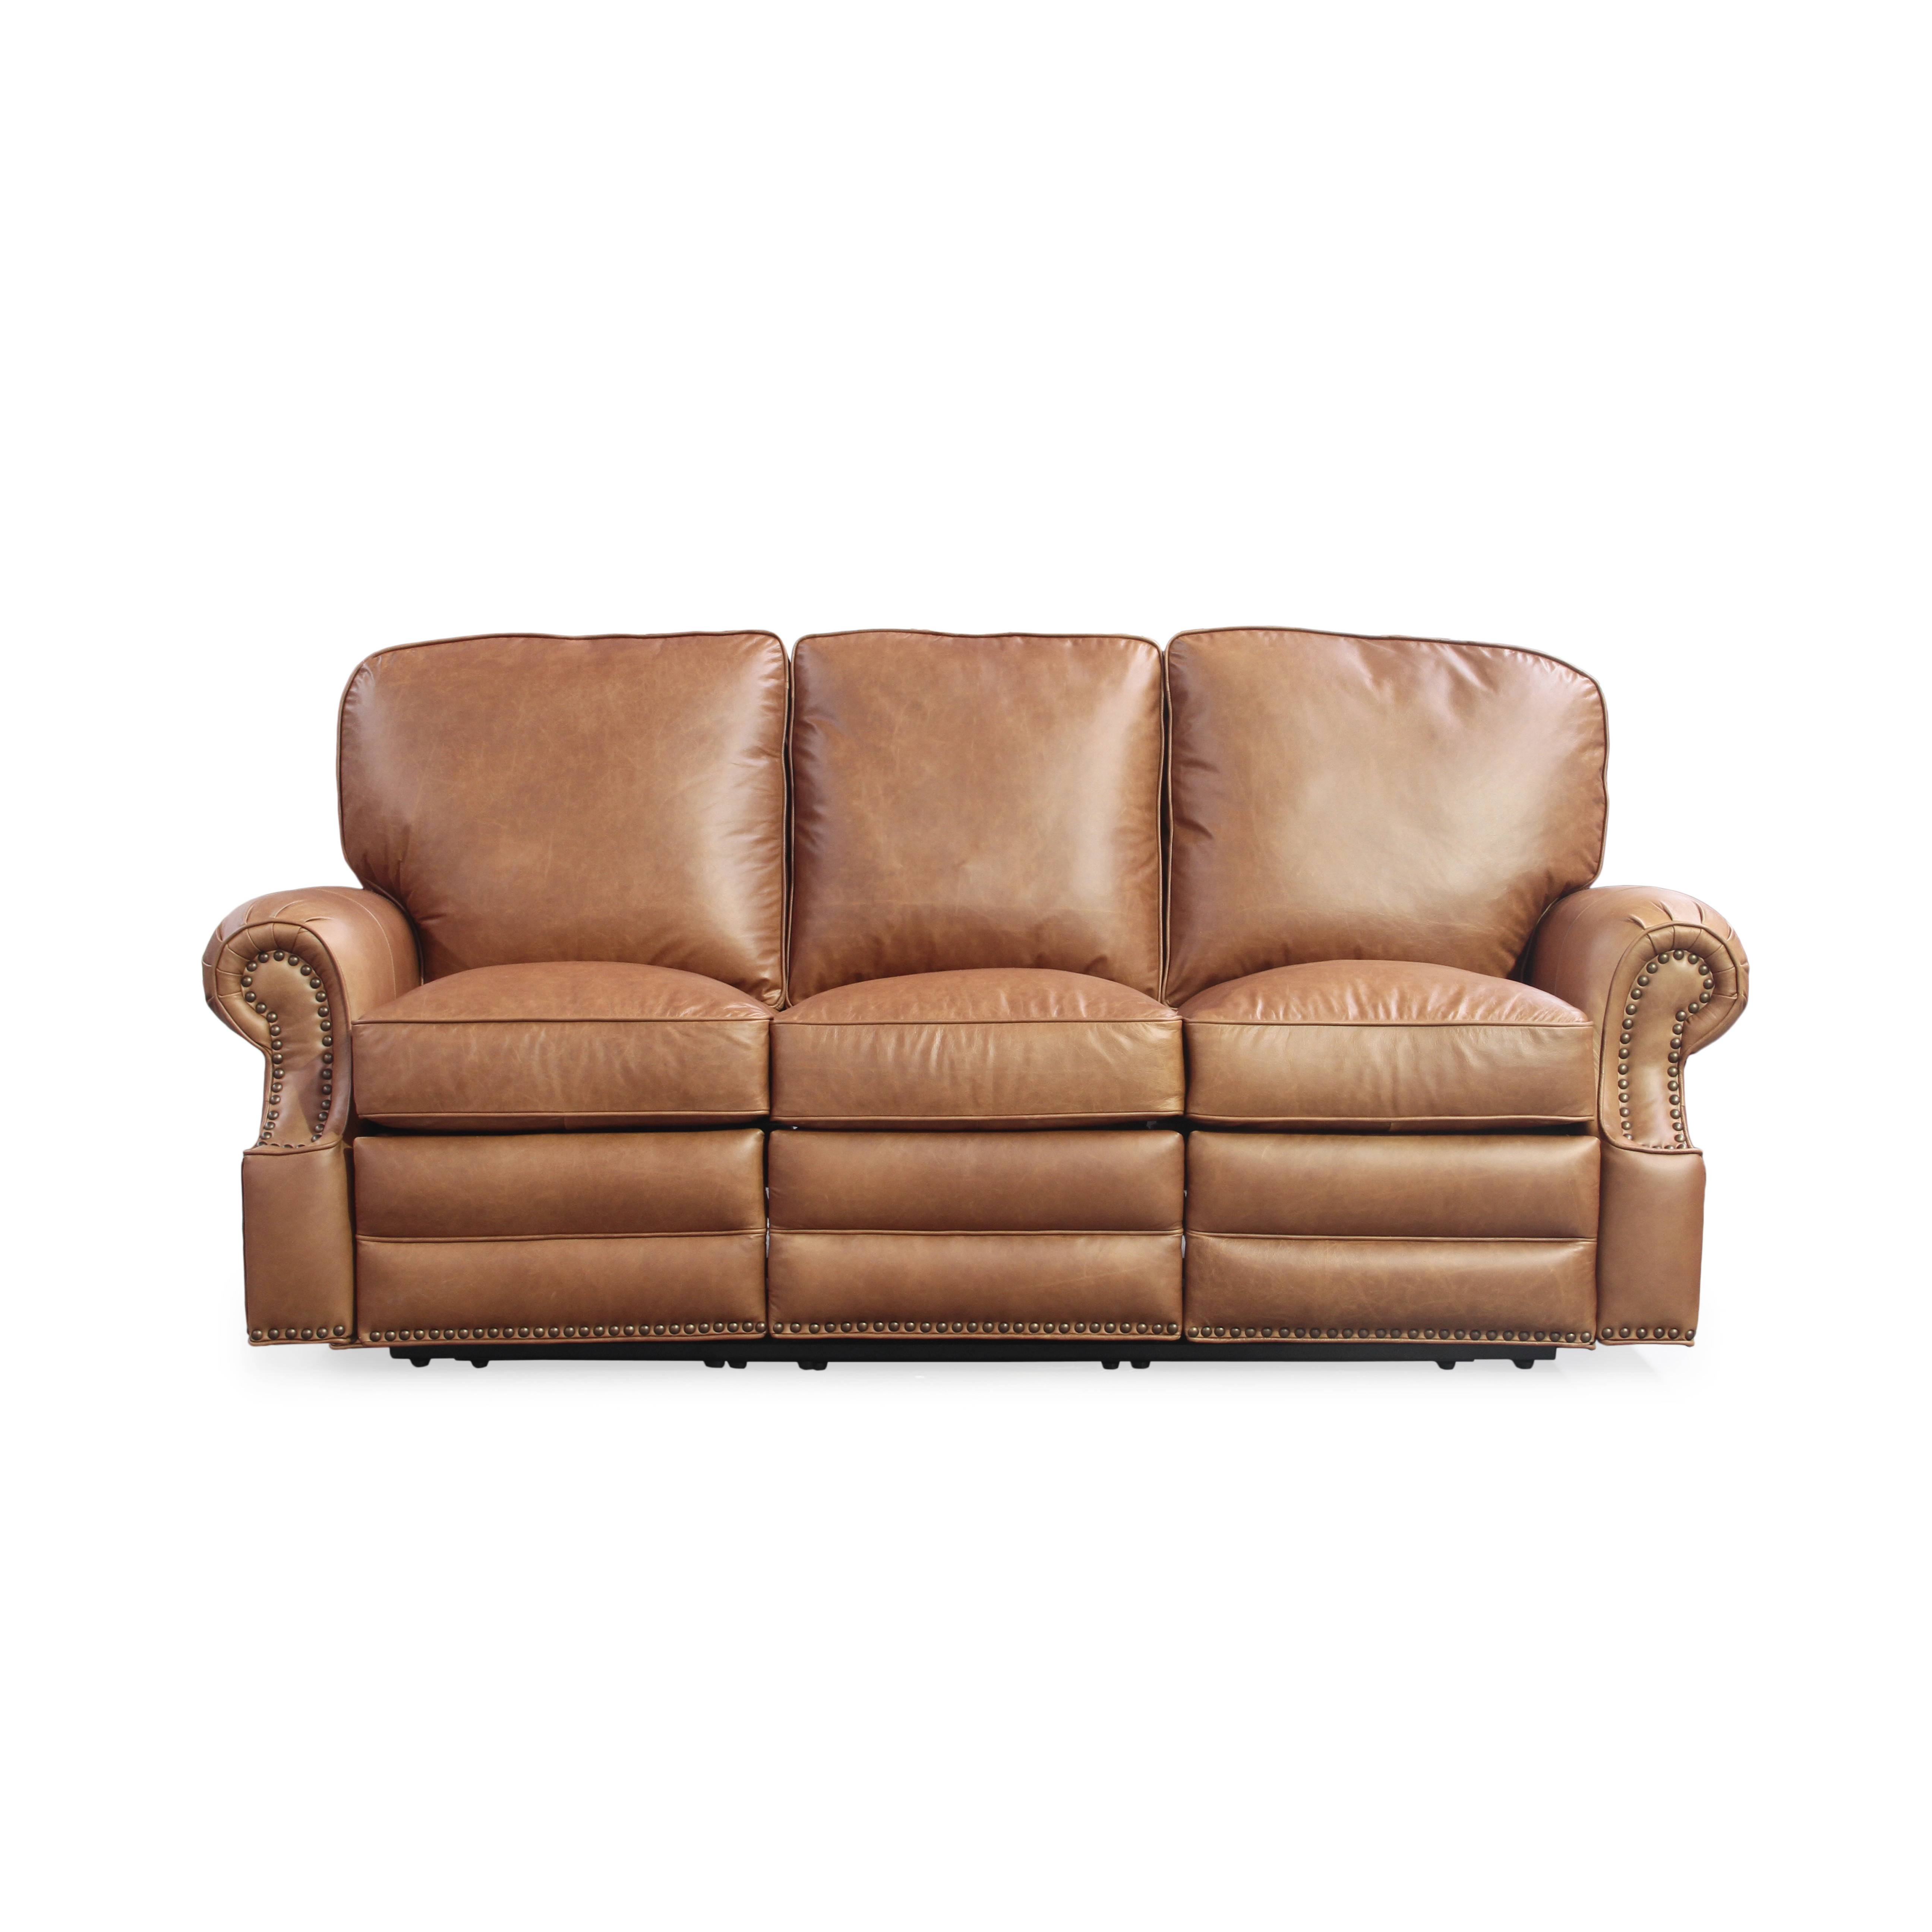 Blair Leather Sofa – Thesofa In Cool Home Design | Wuoizz in Blair Leather Sofas (Image 3 of 15)